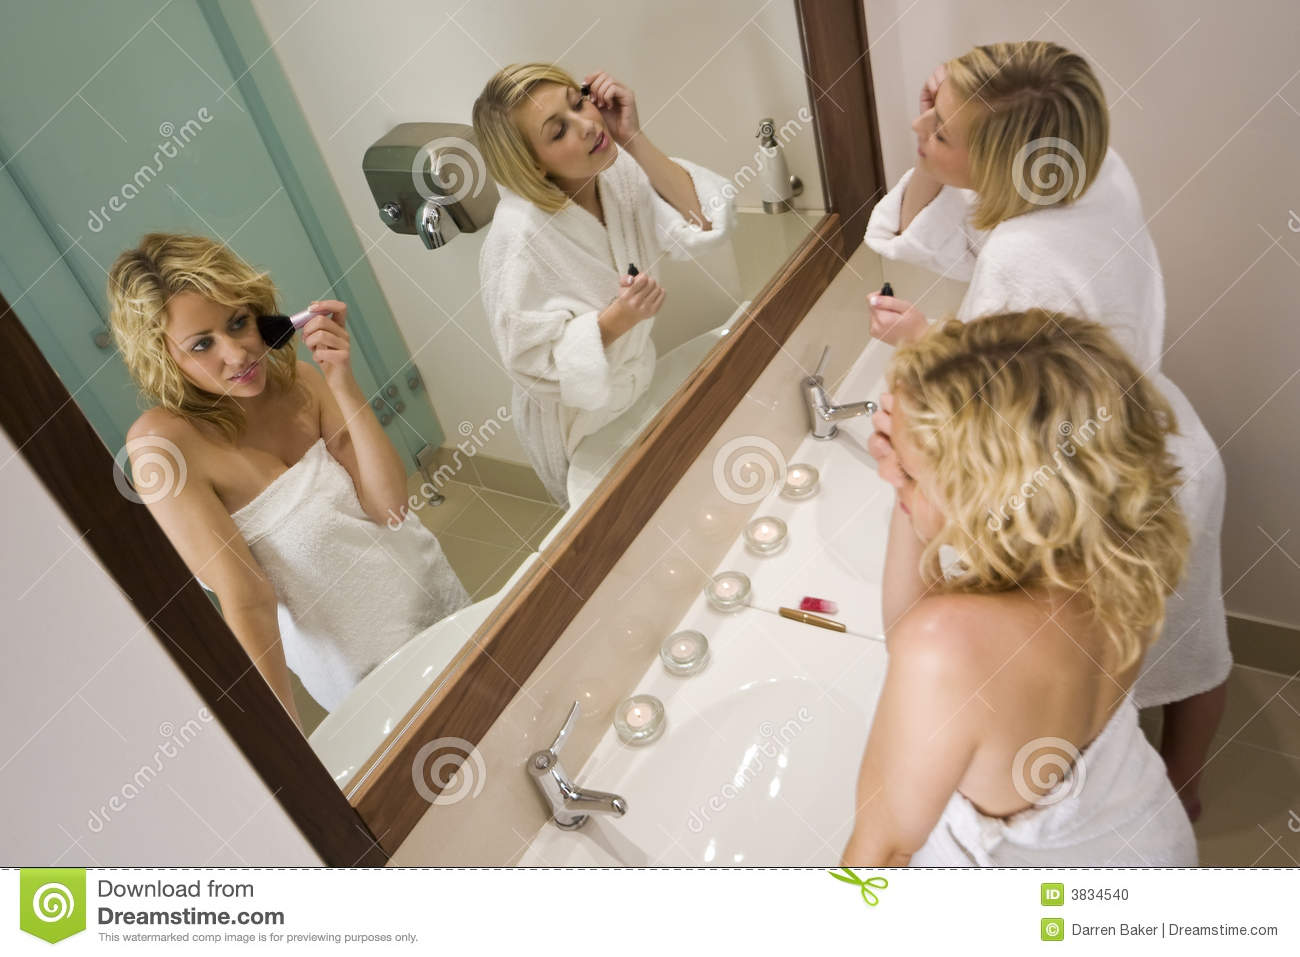 Girls getting ready to go out